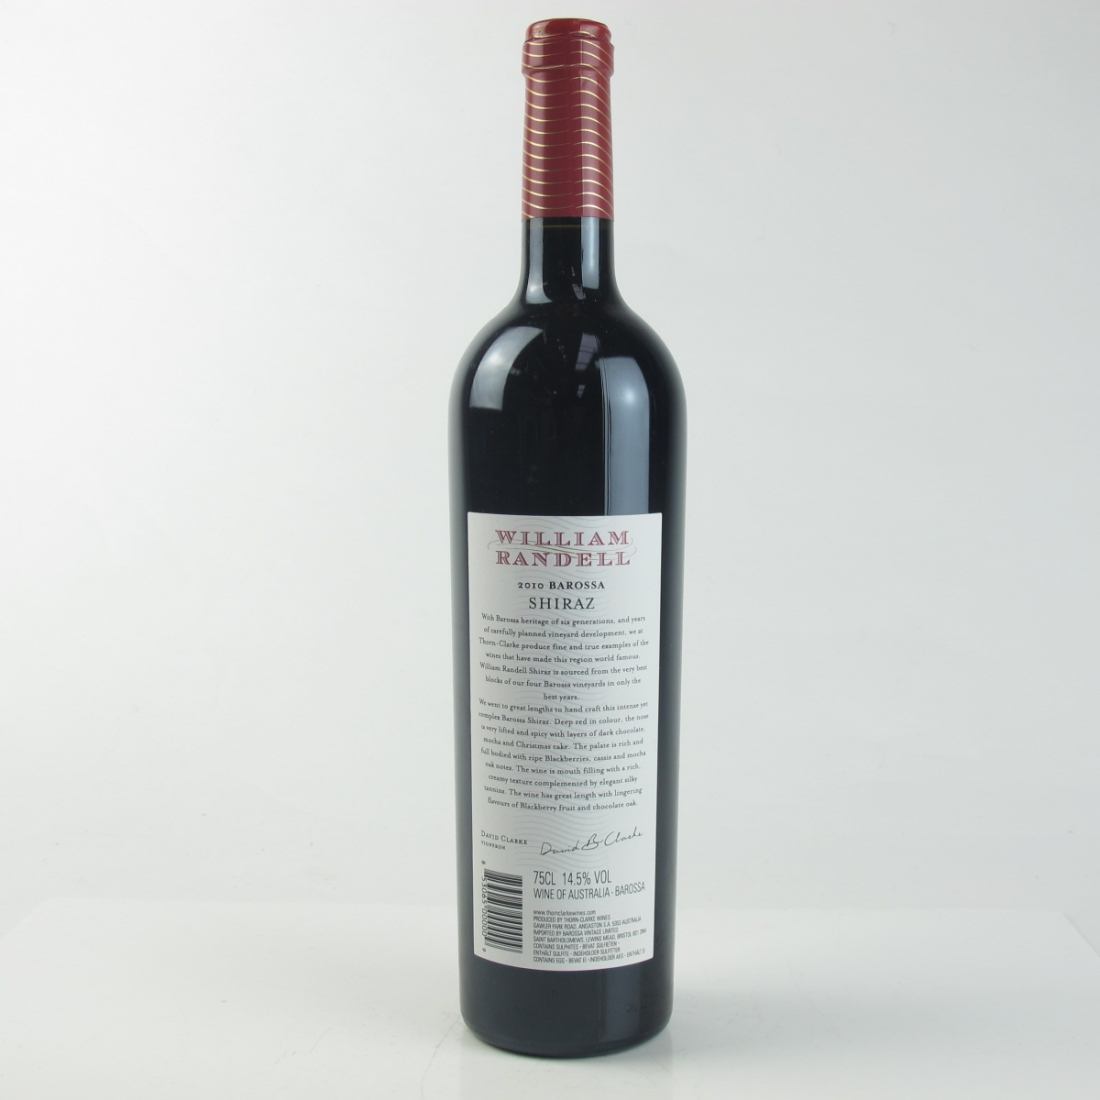 William Randell Shiraz 2010 Barossa